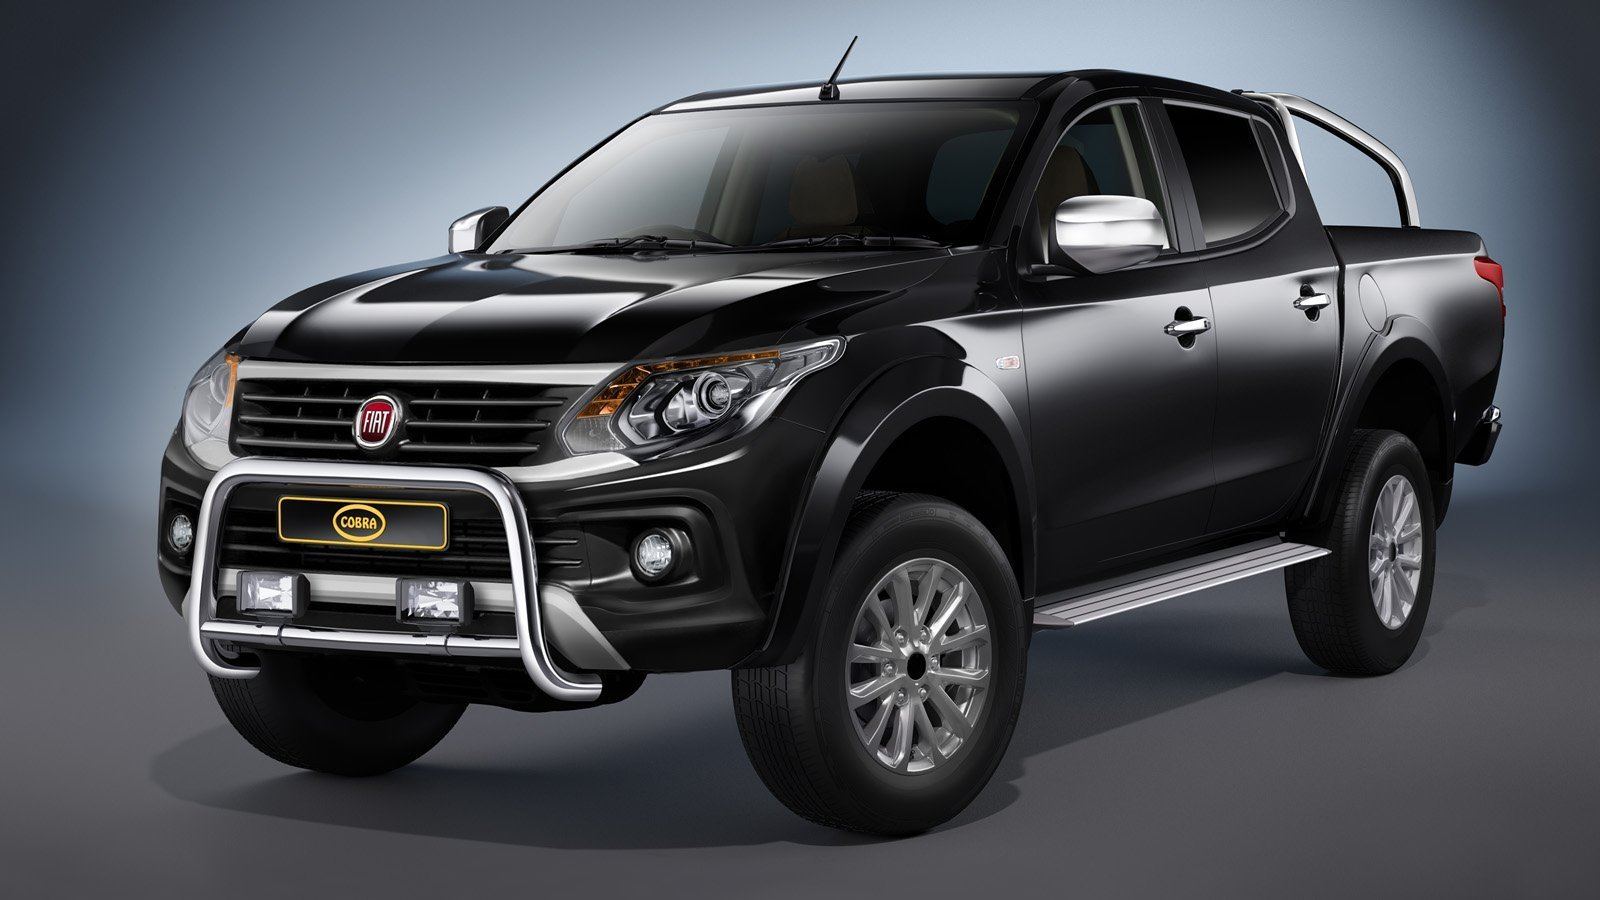 fiat fullback eu front guard 2016 tuning parts to fullback. Black Bedroom Furniture Sets. Home Design Ideas